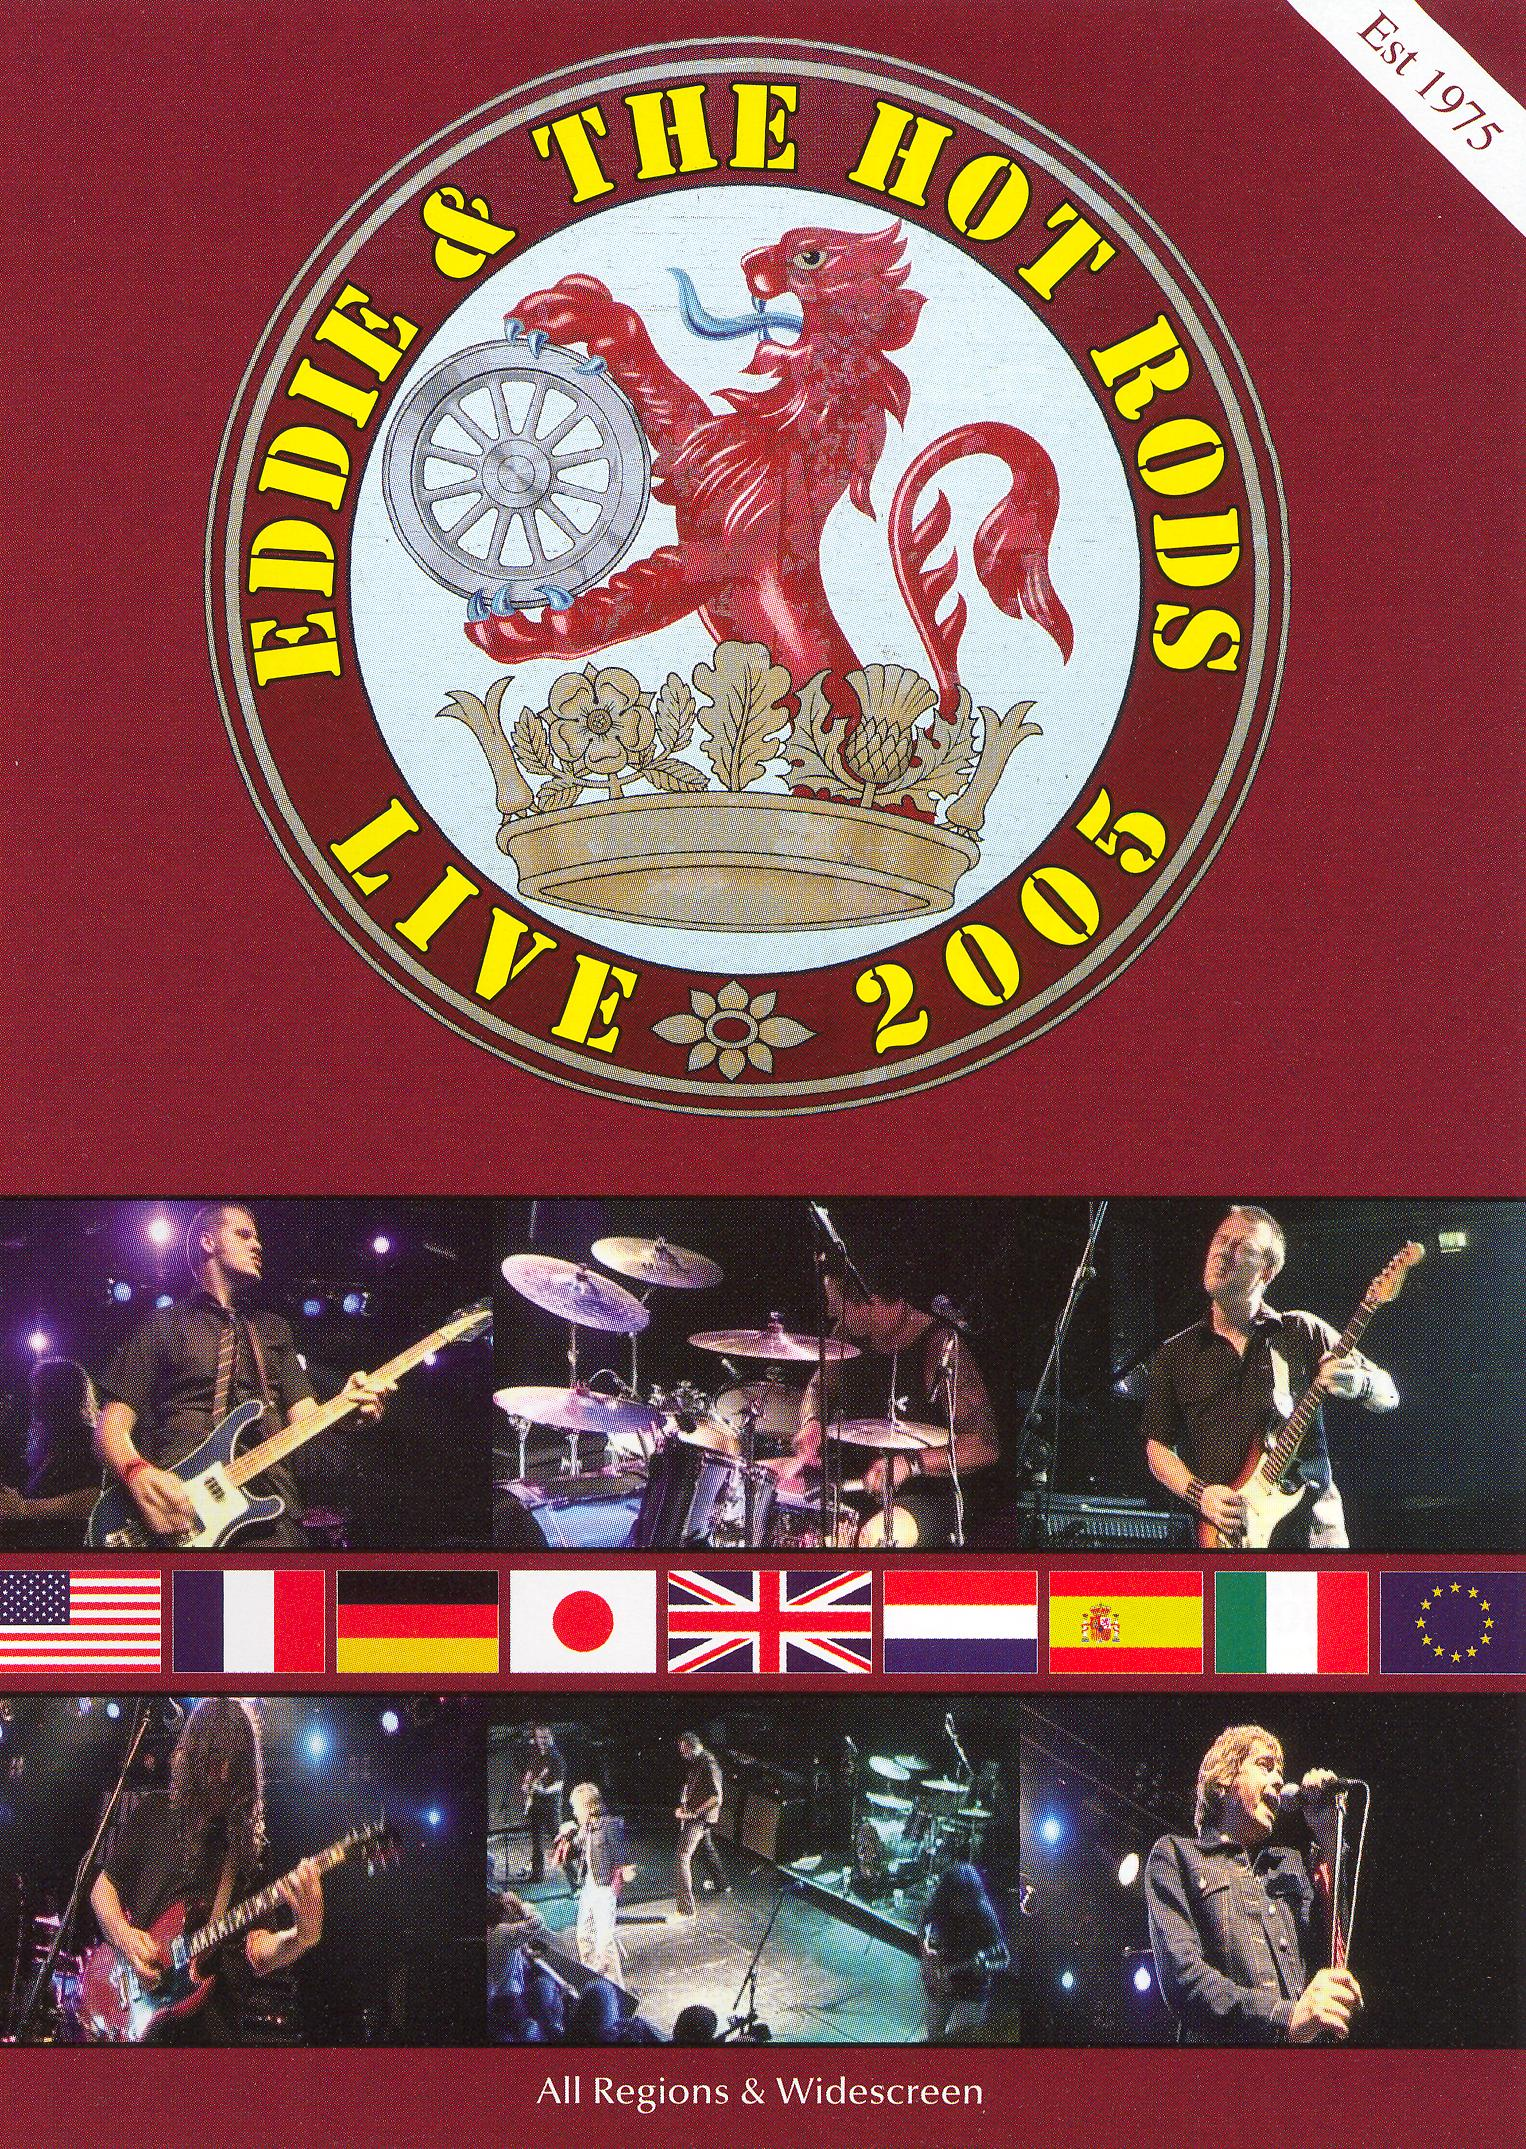 Eddie and the Hot Rods: Live 2005